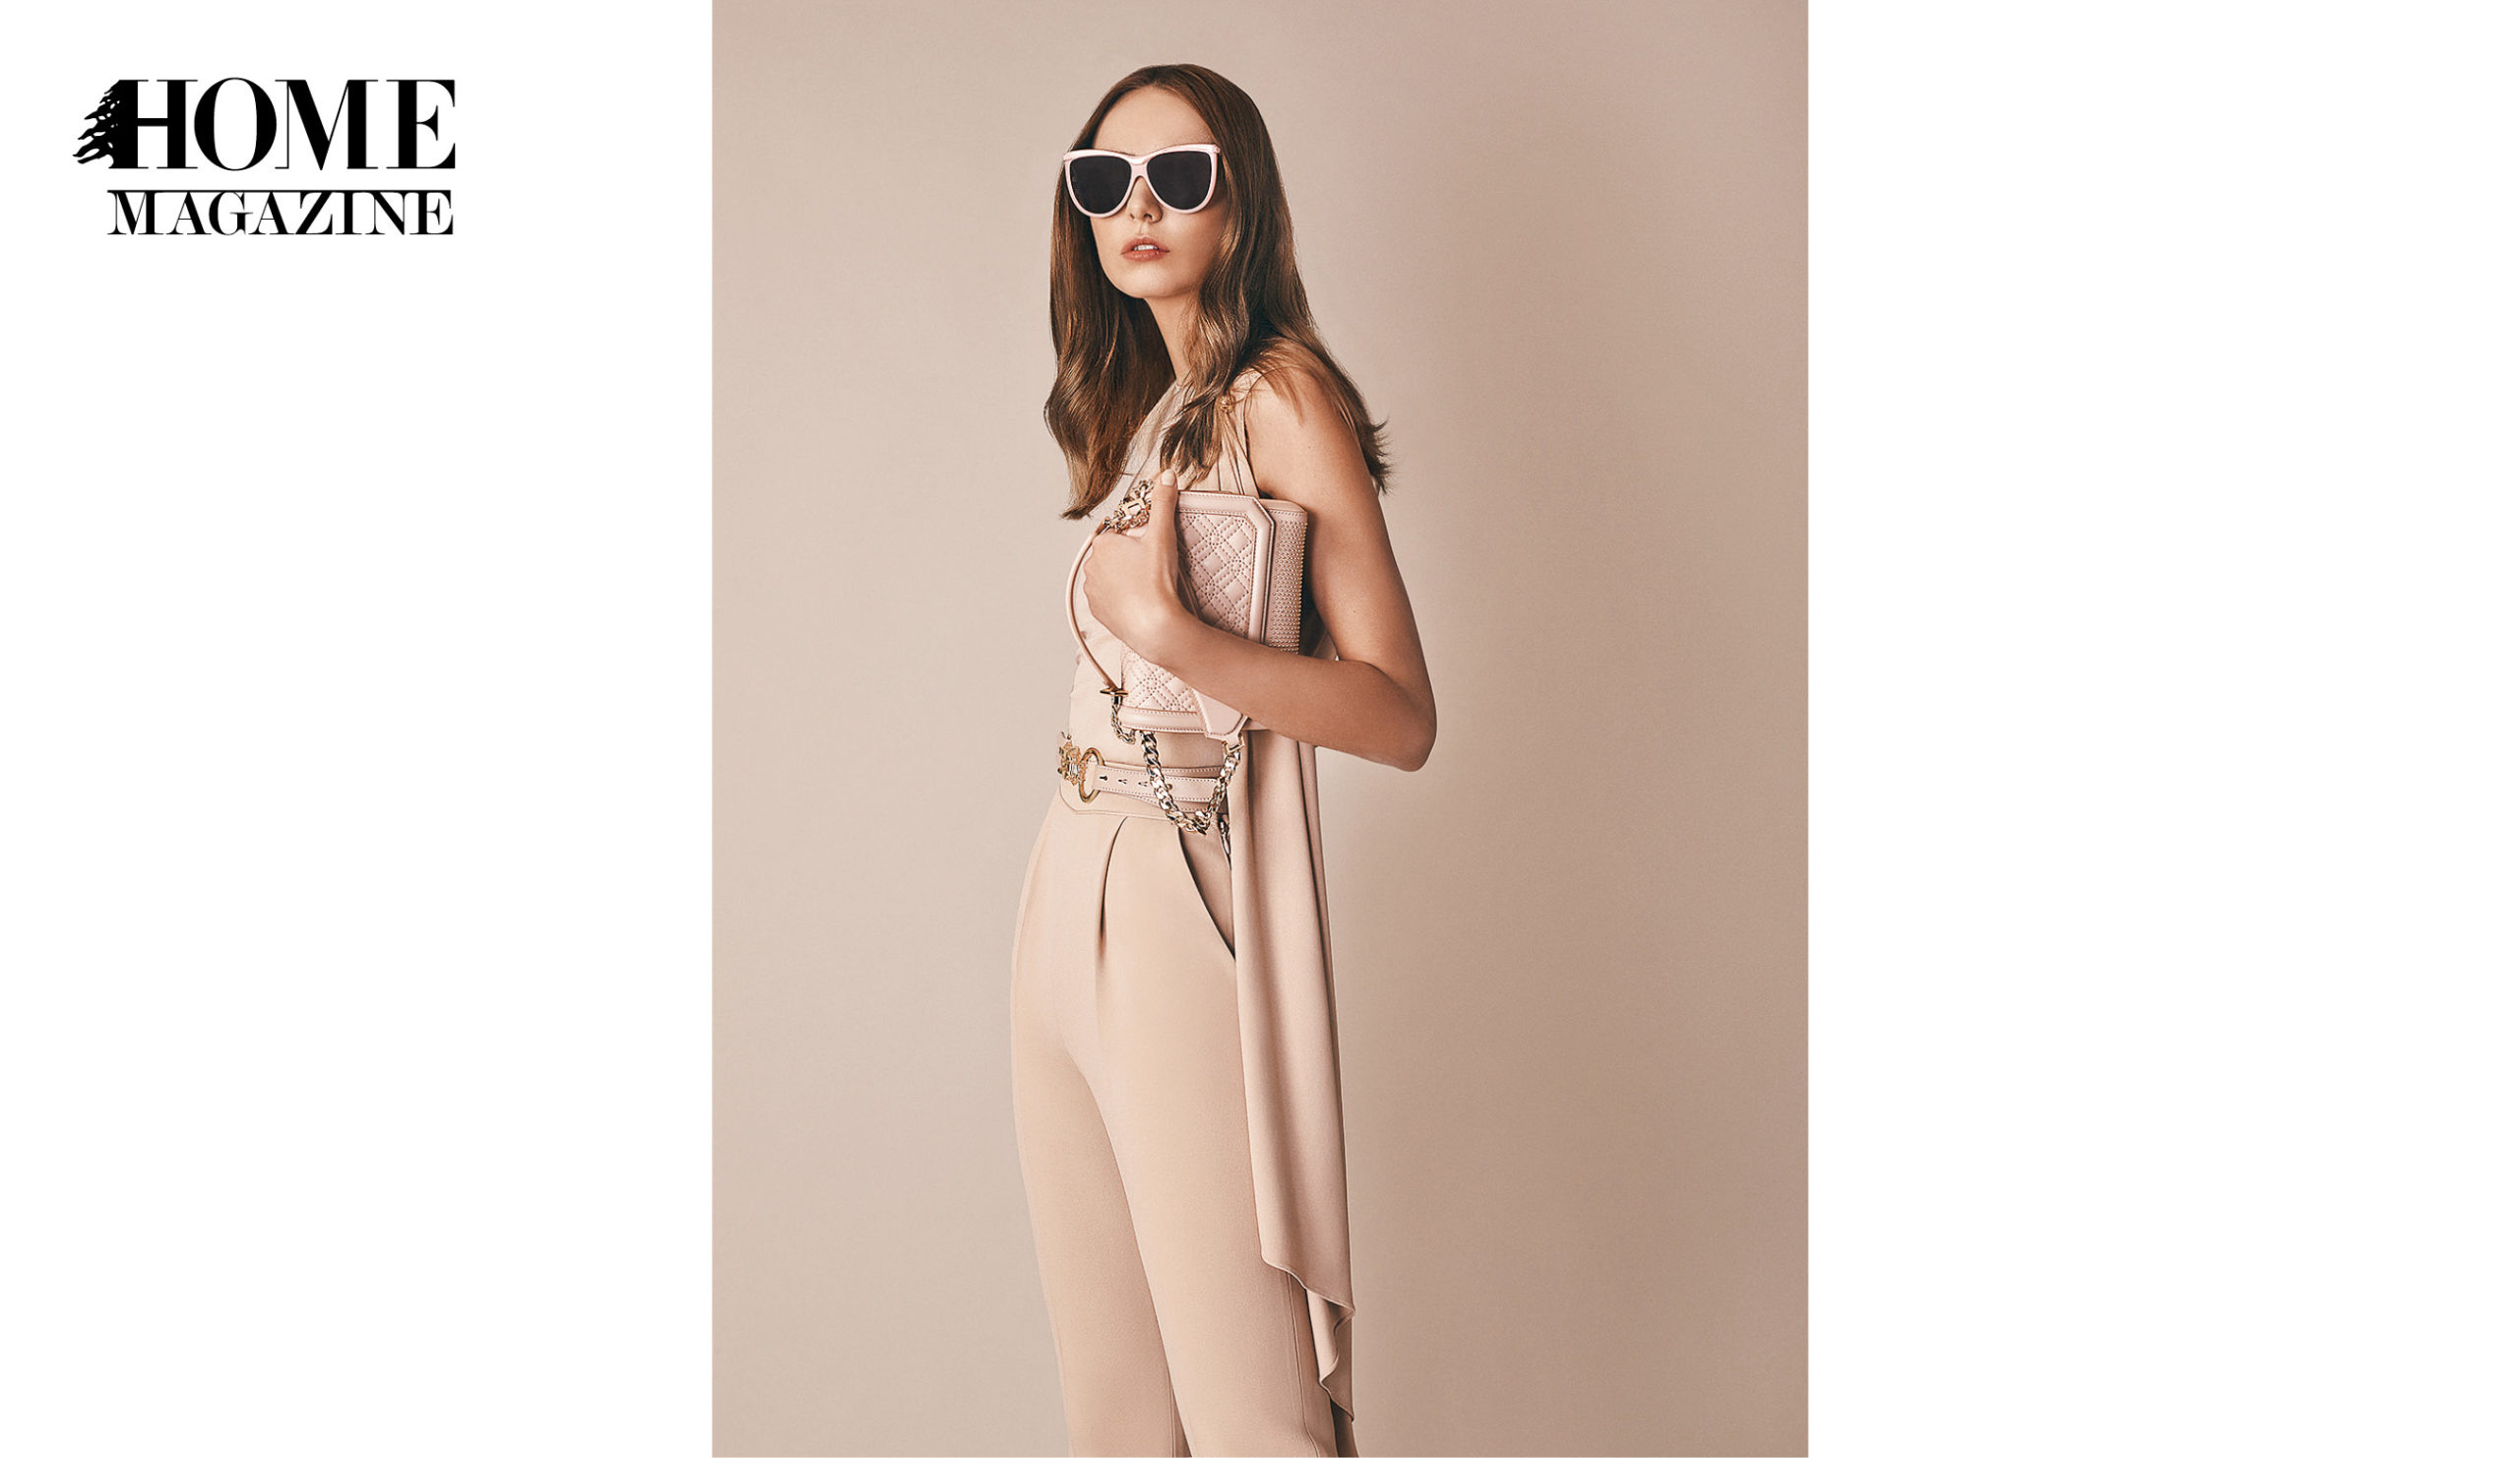 Model wearing beige clothes and sunglasses